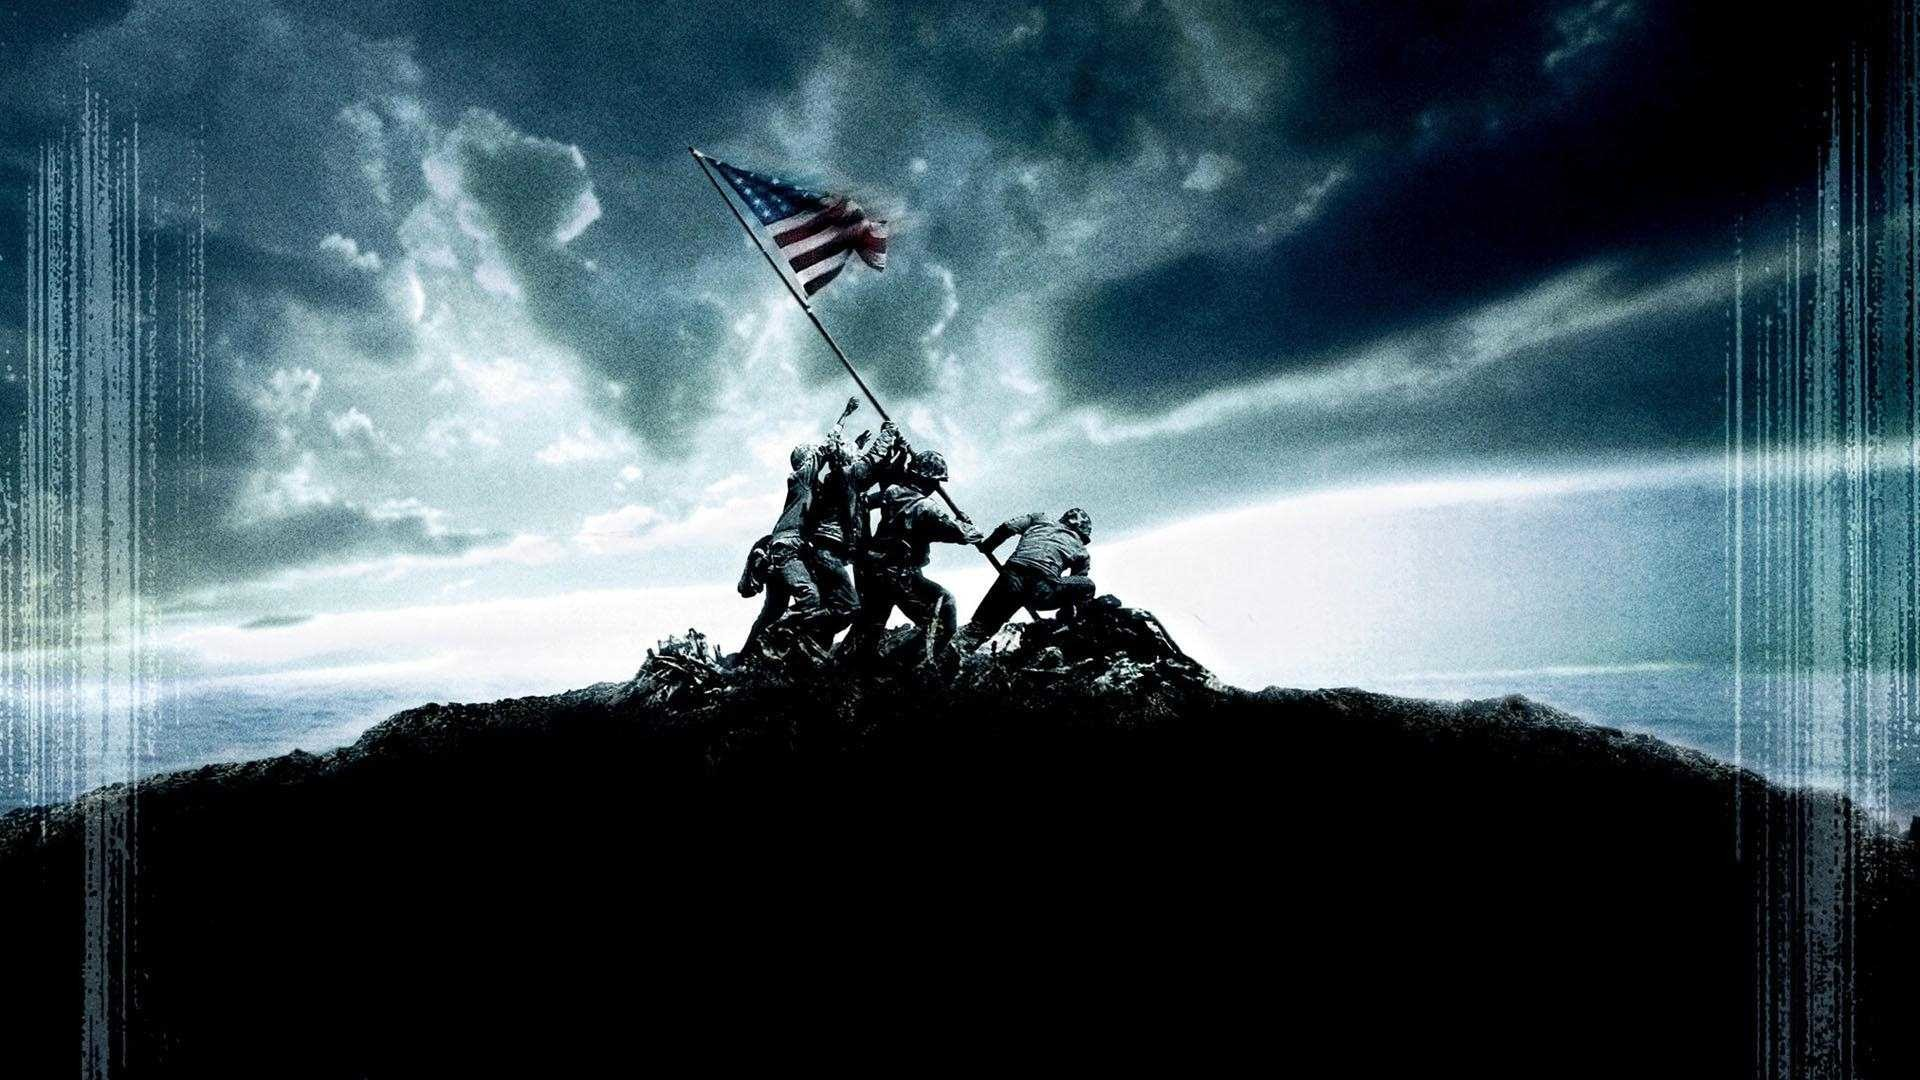 Marine Corps Wallpaper HD Best Cllection Of marine Wallpaper 1024×768 Marine  Wallpaper (40 Wallpapers)   Adorable Wallpapers   Wallpapers   Pinterest …